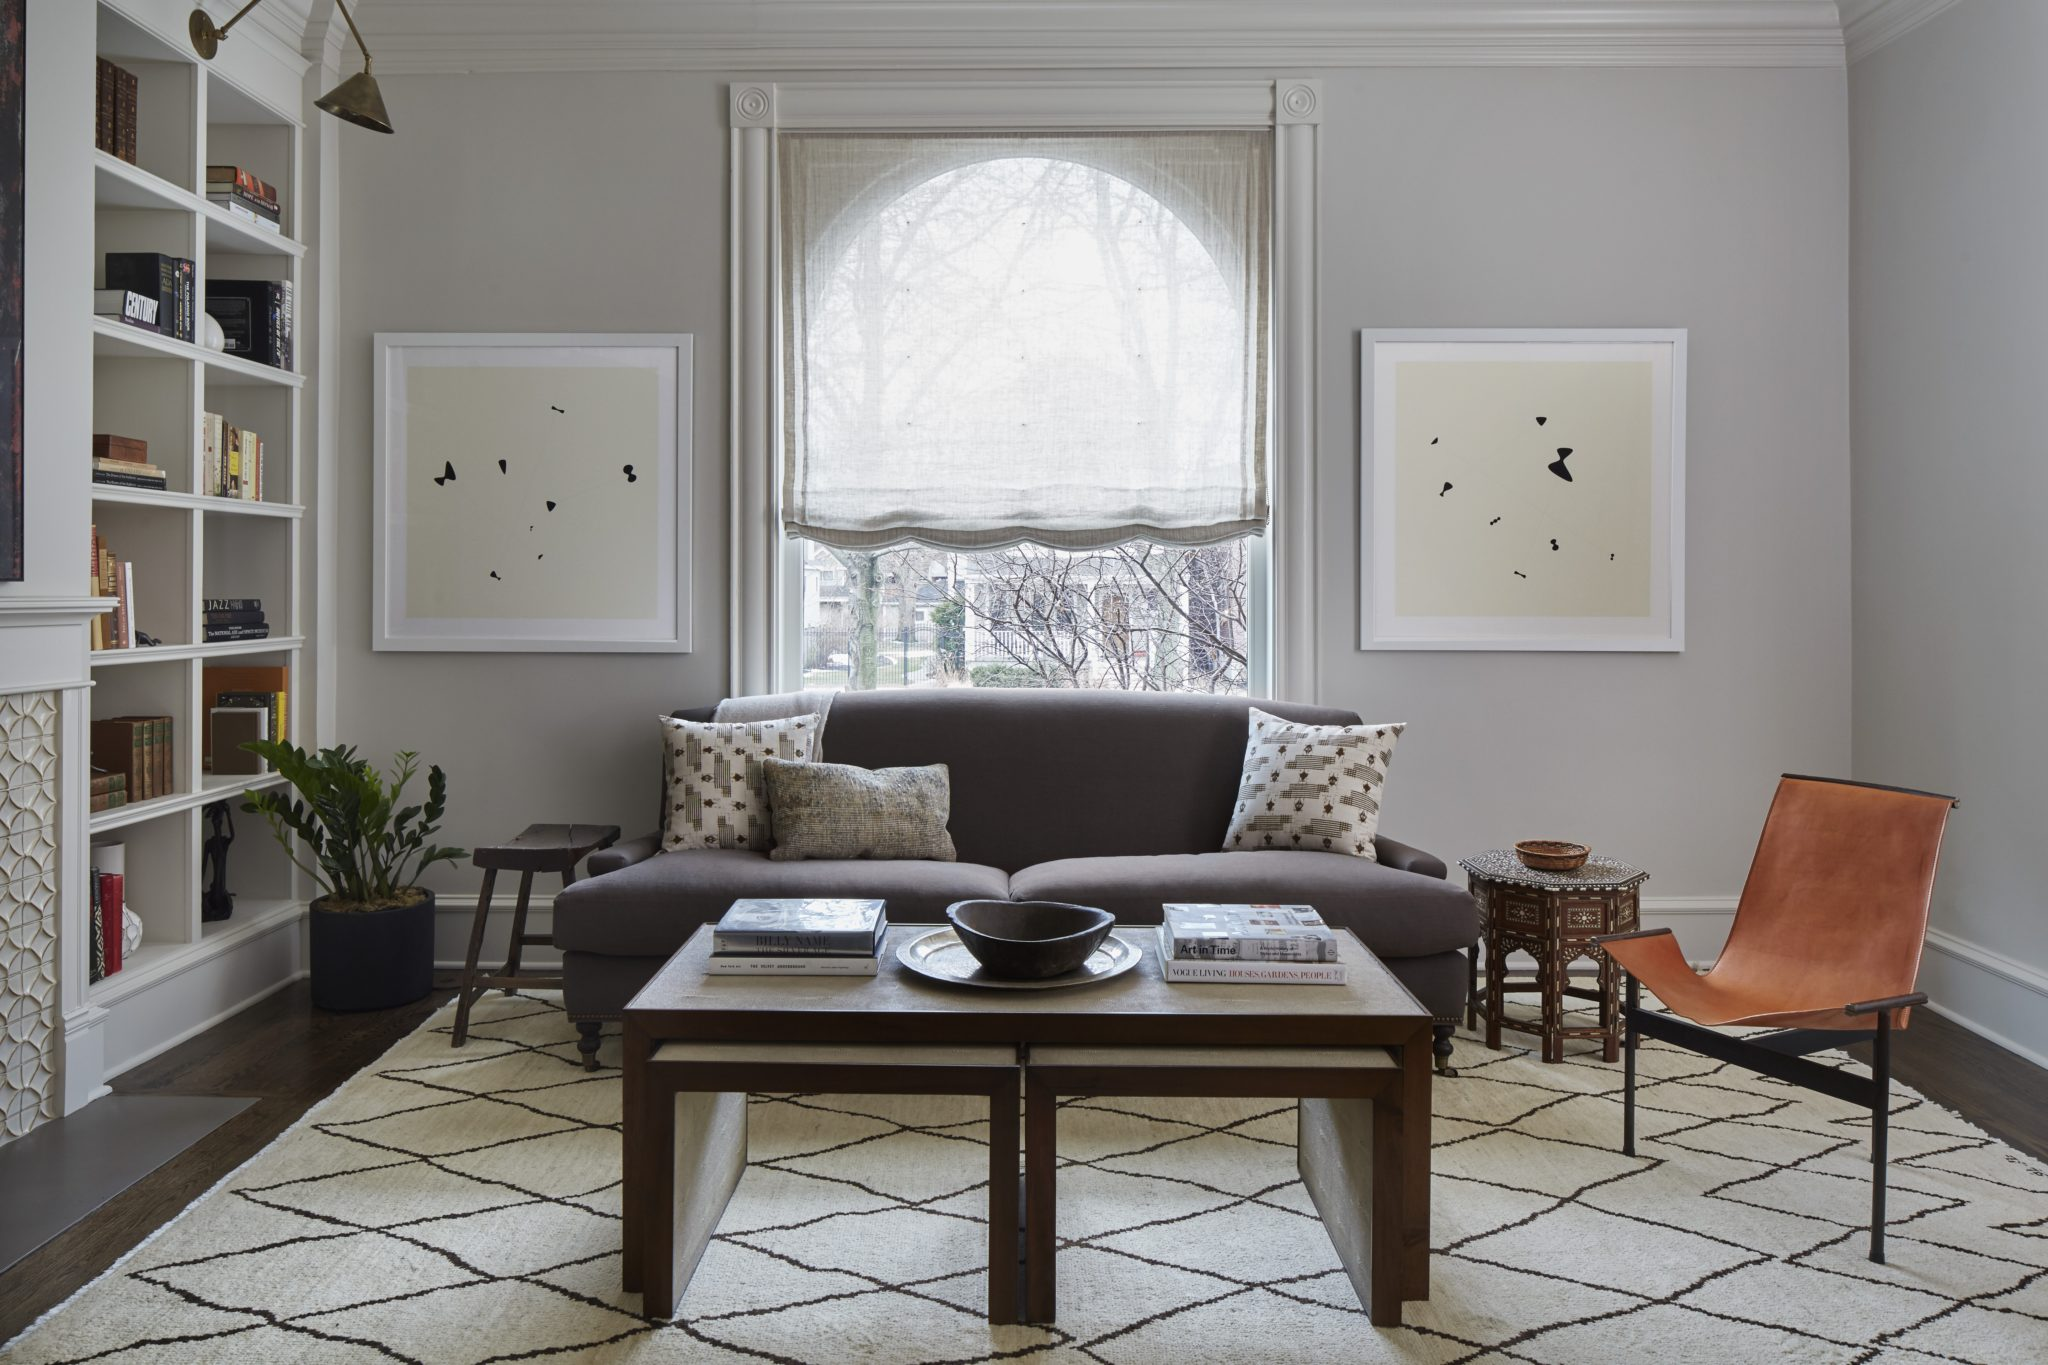 Greenview Ave. Living Room with Moroccan Rug by 2to5 Design